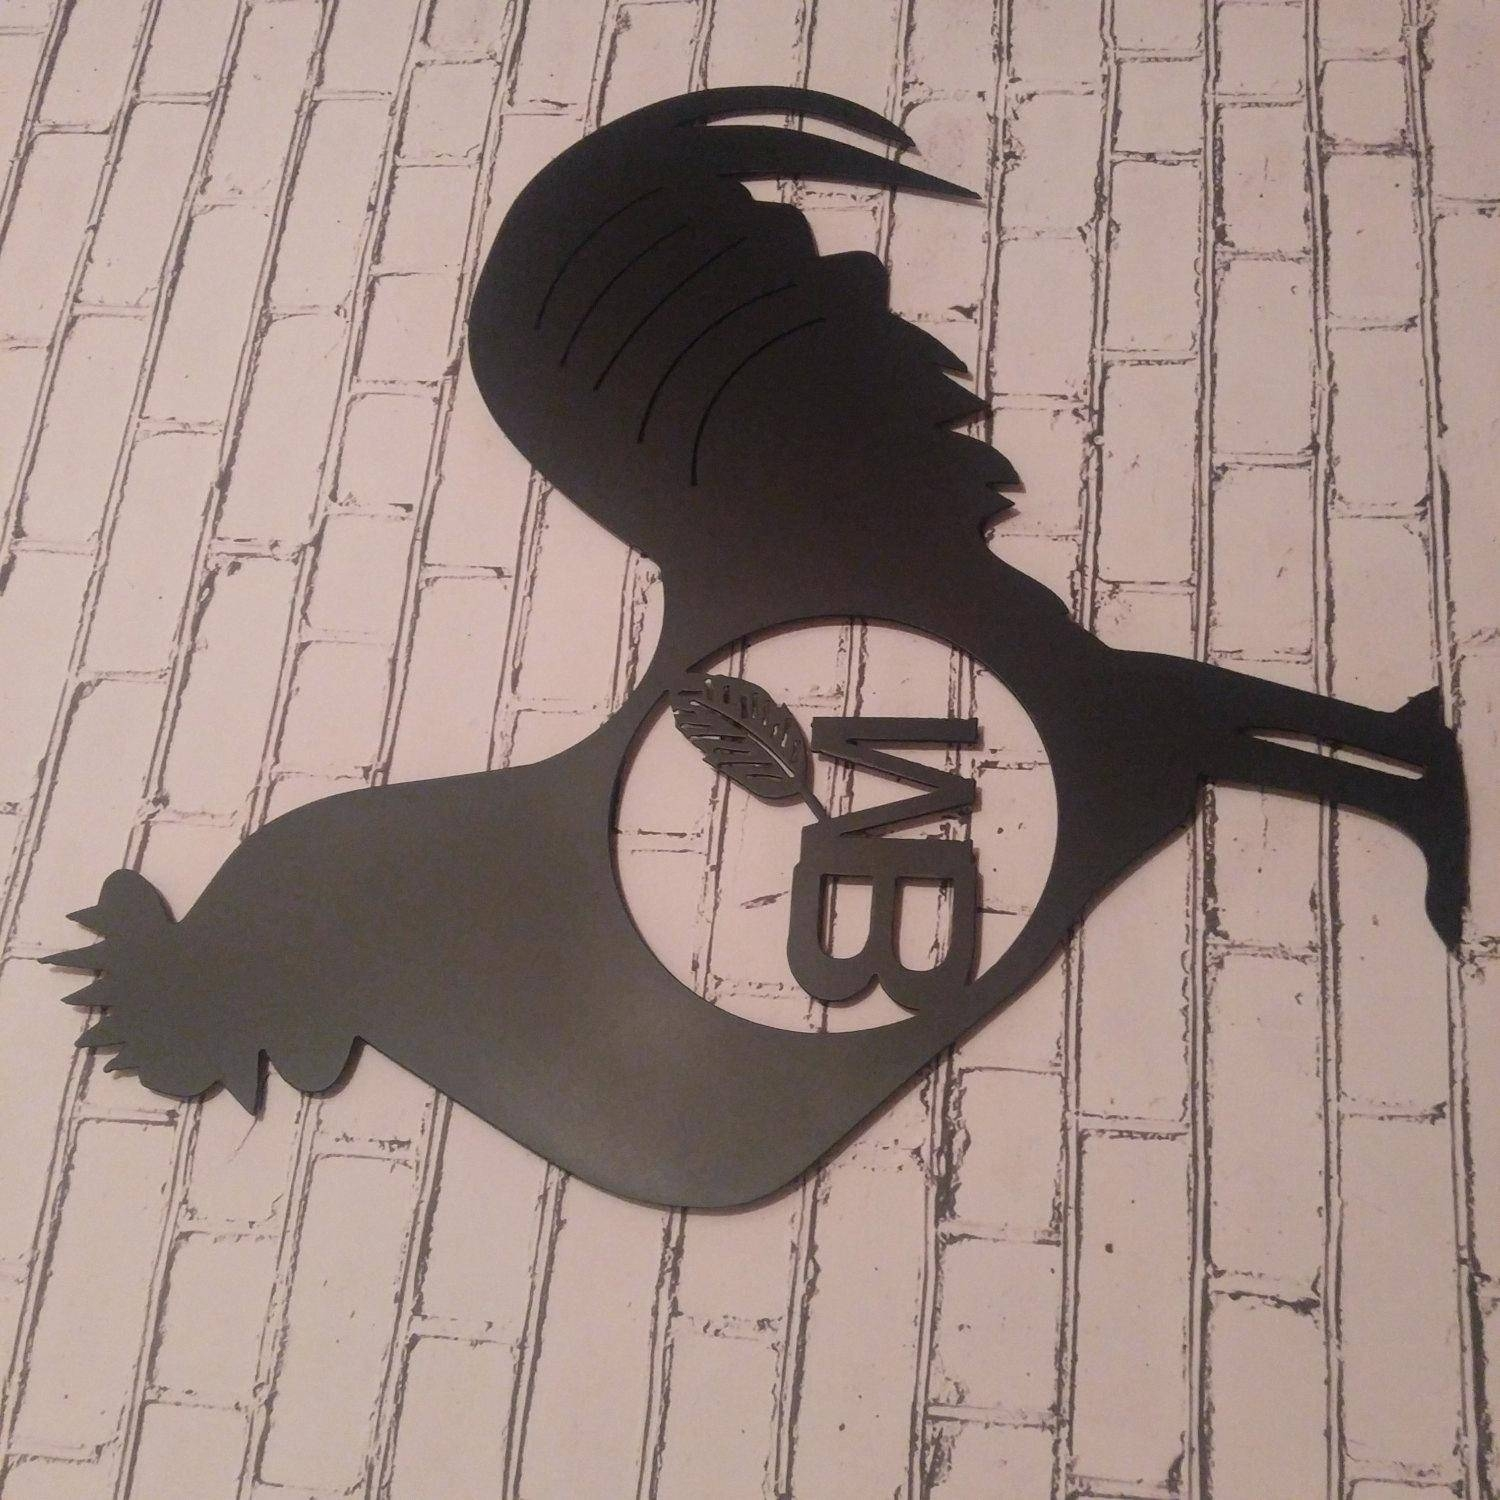 Wall Decor: Amazing Metal Rooster Wall Decor For Inspirations For Most Recently Released Metal Rooster Wall Decor (View 16 of 25)